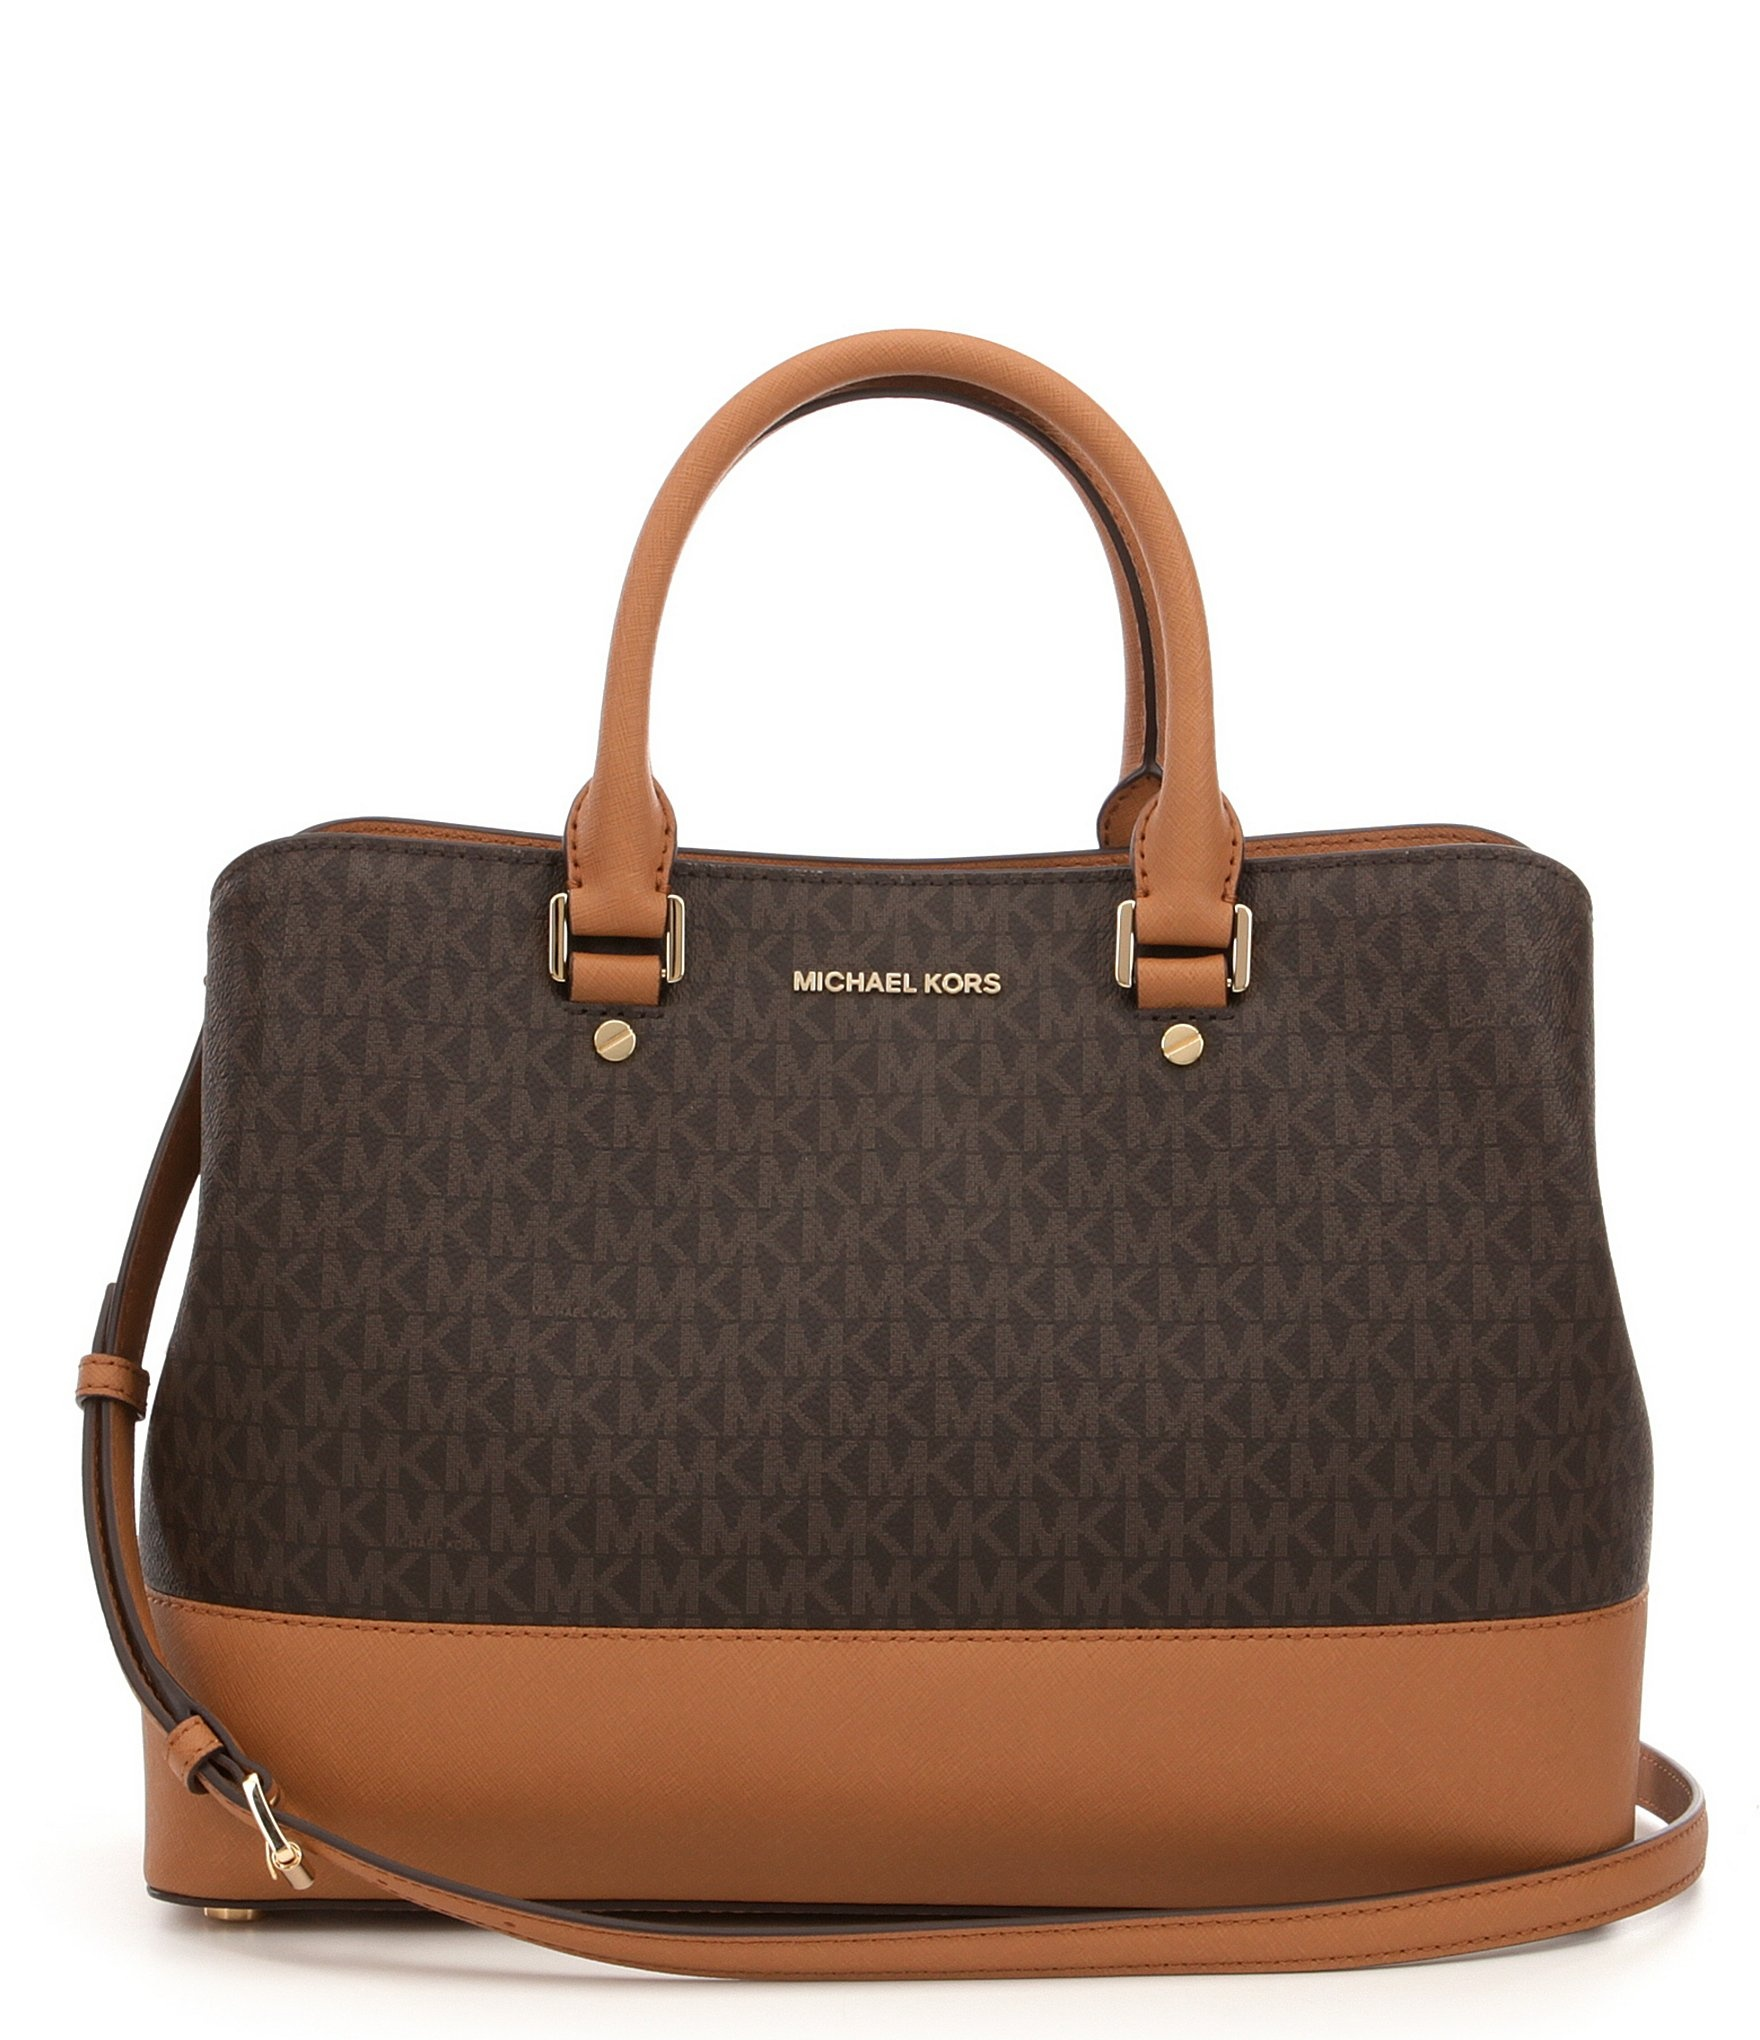 How to spot a fake Michael Kors purse Quora